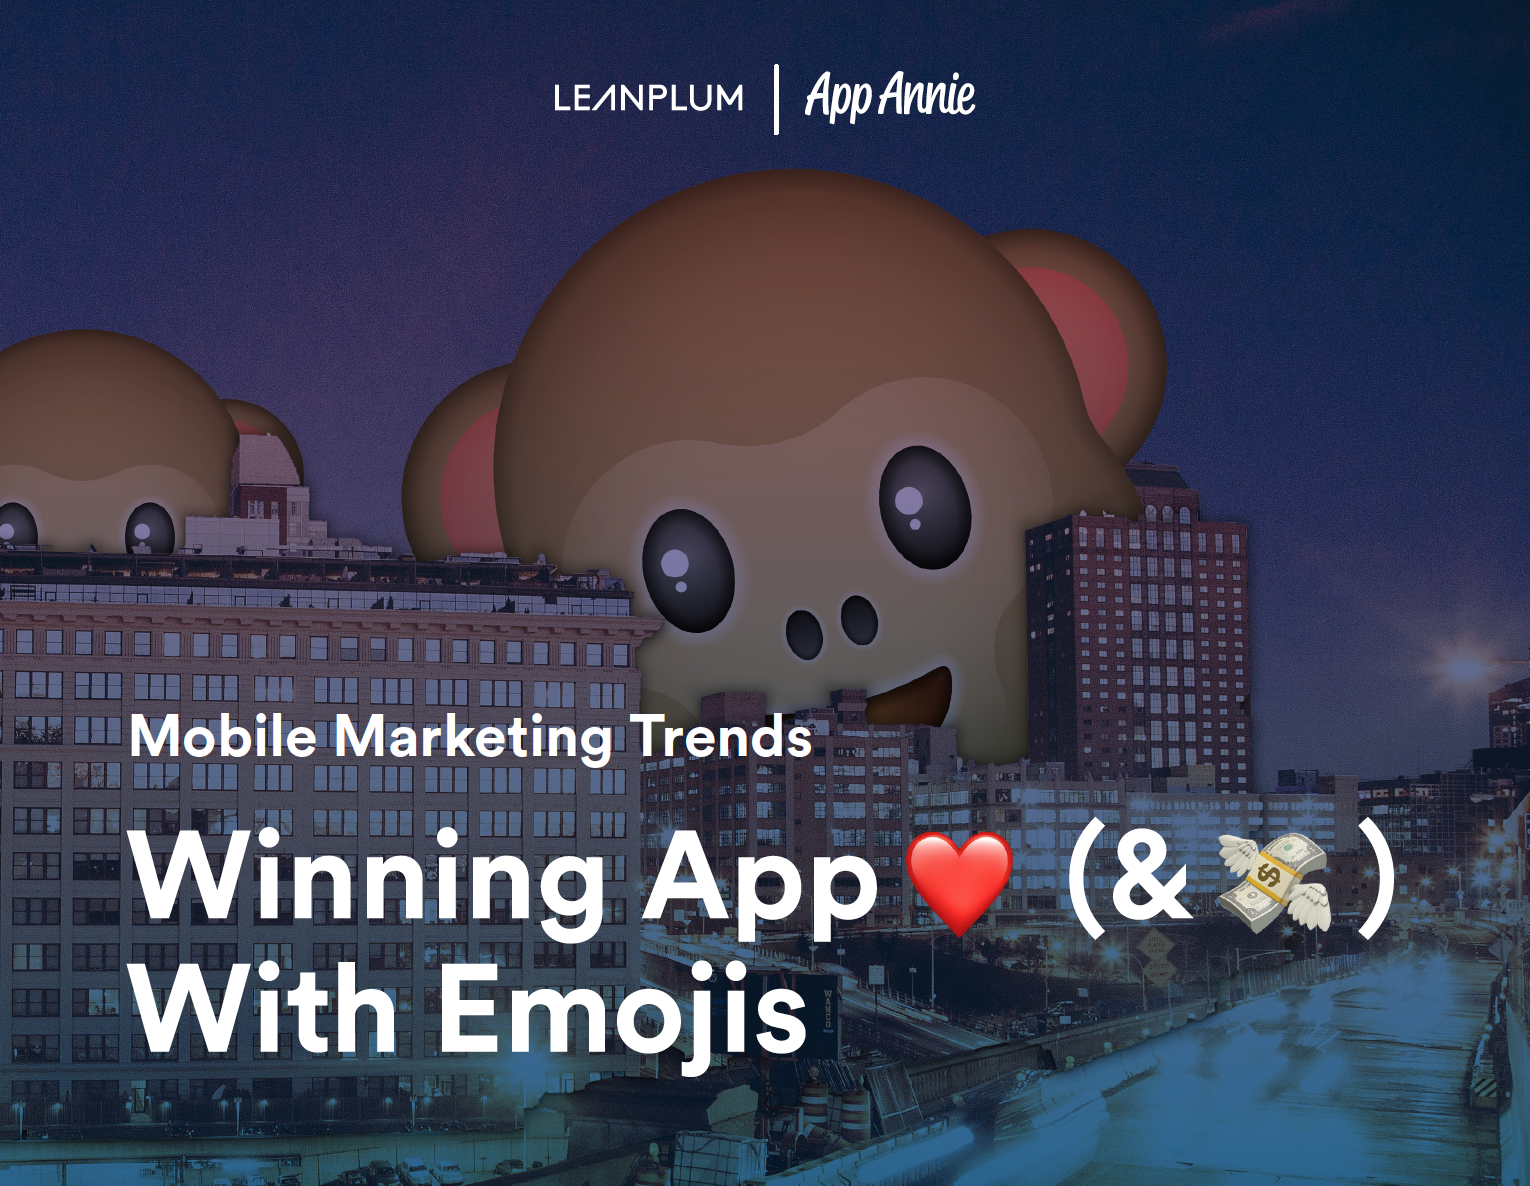 emoji push notifications press release